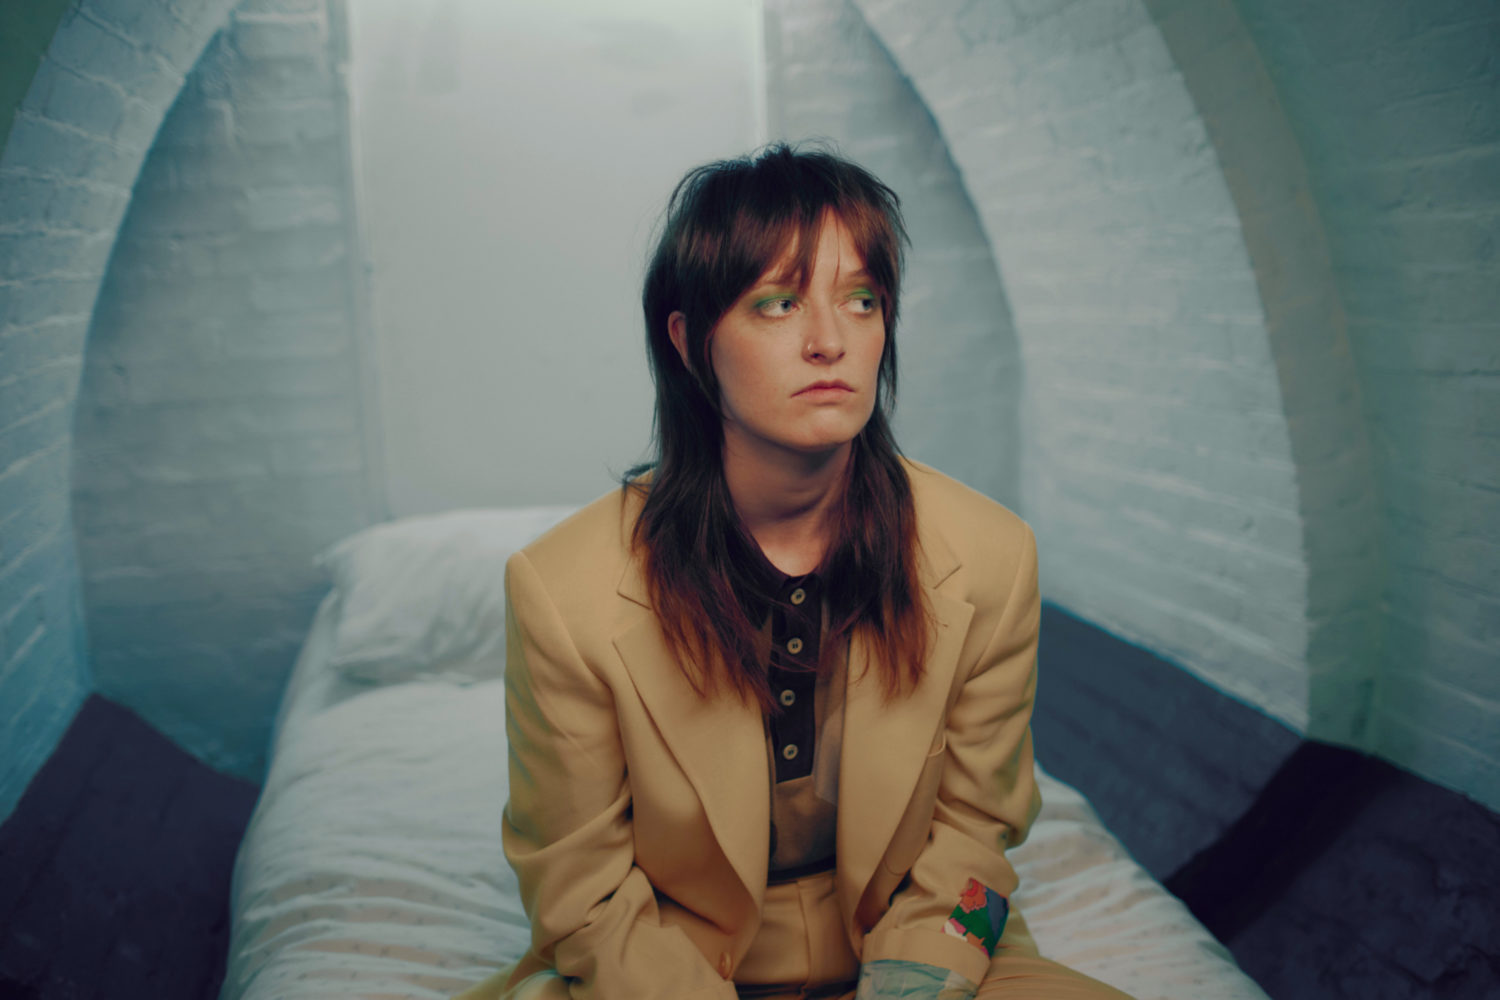 Orla Gartland releases new single 'You're Not Special, Babe'